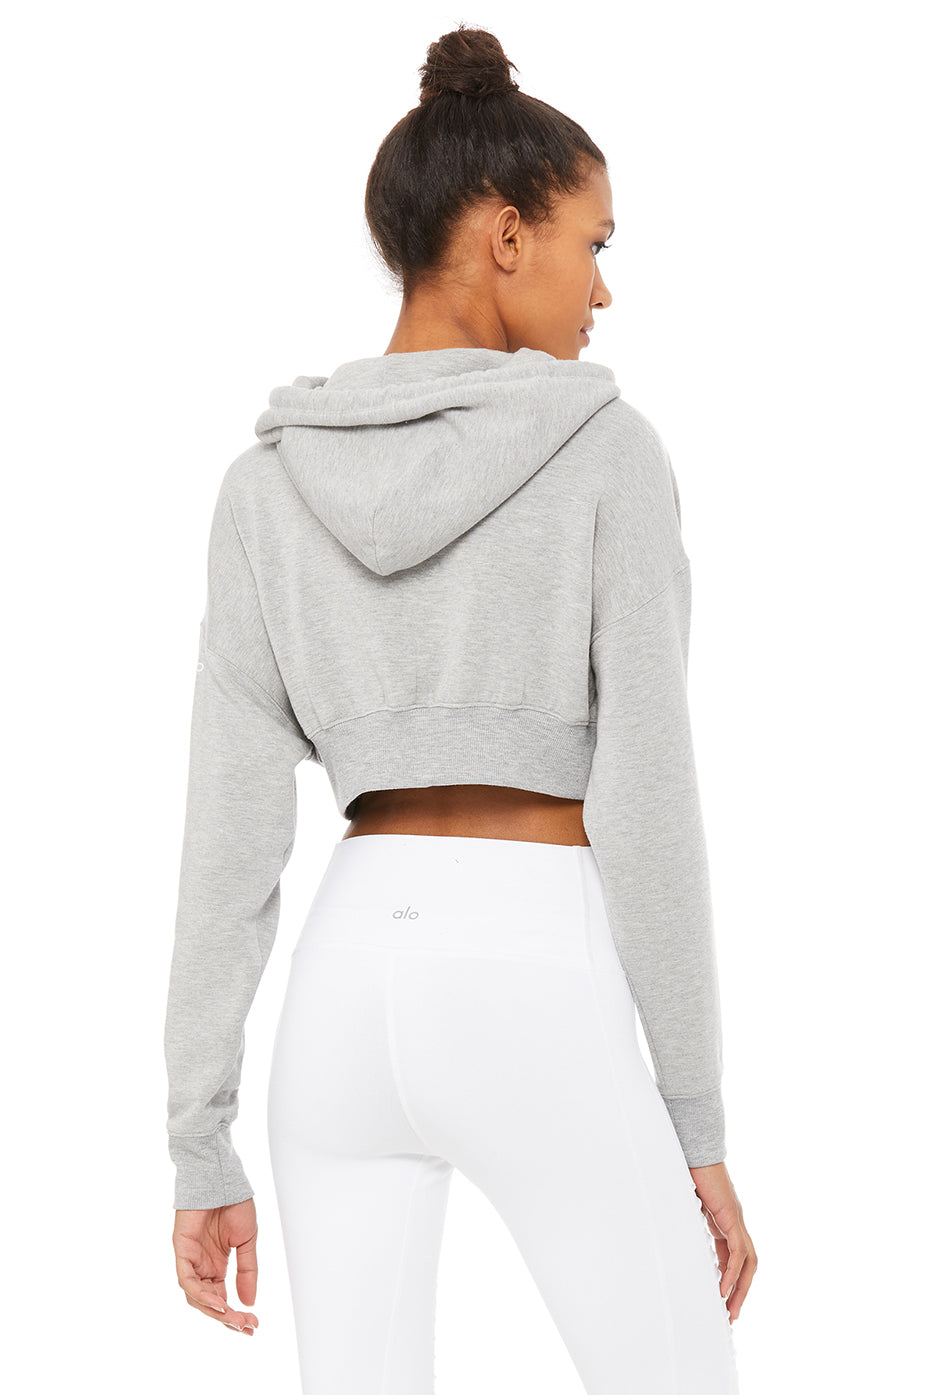 Limited-Edition Exclusive Ascend Hoodie